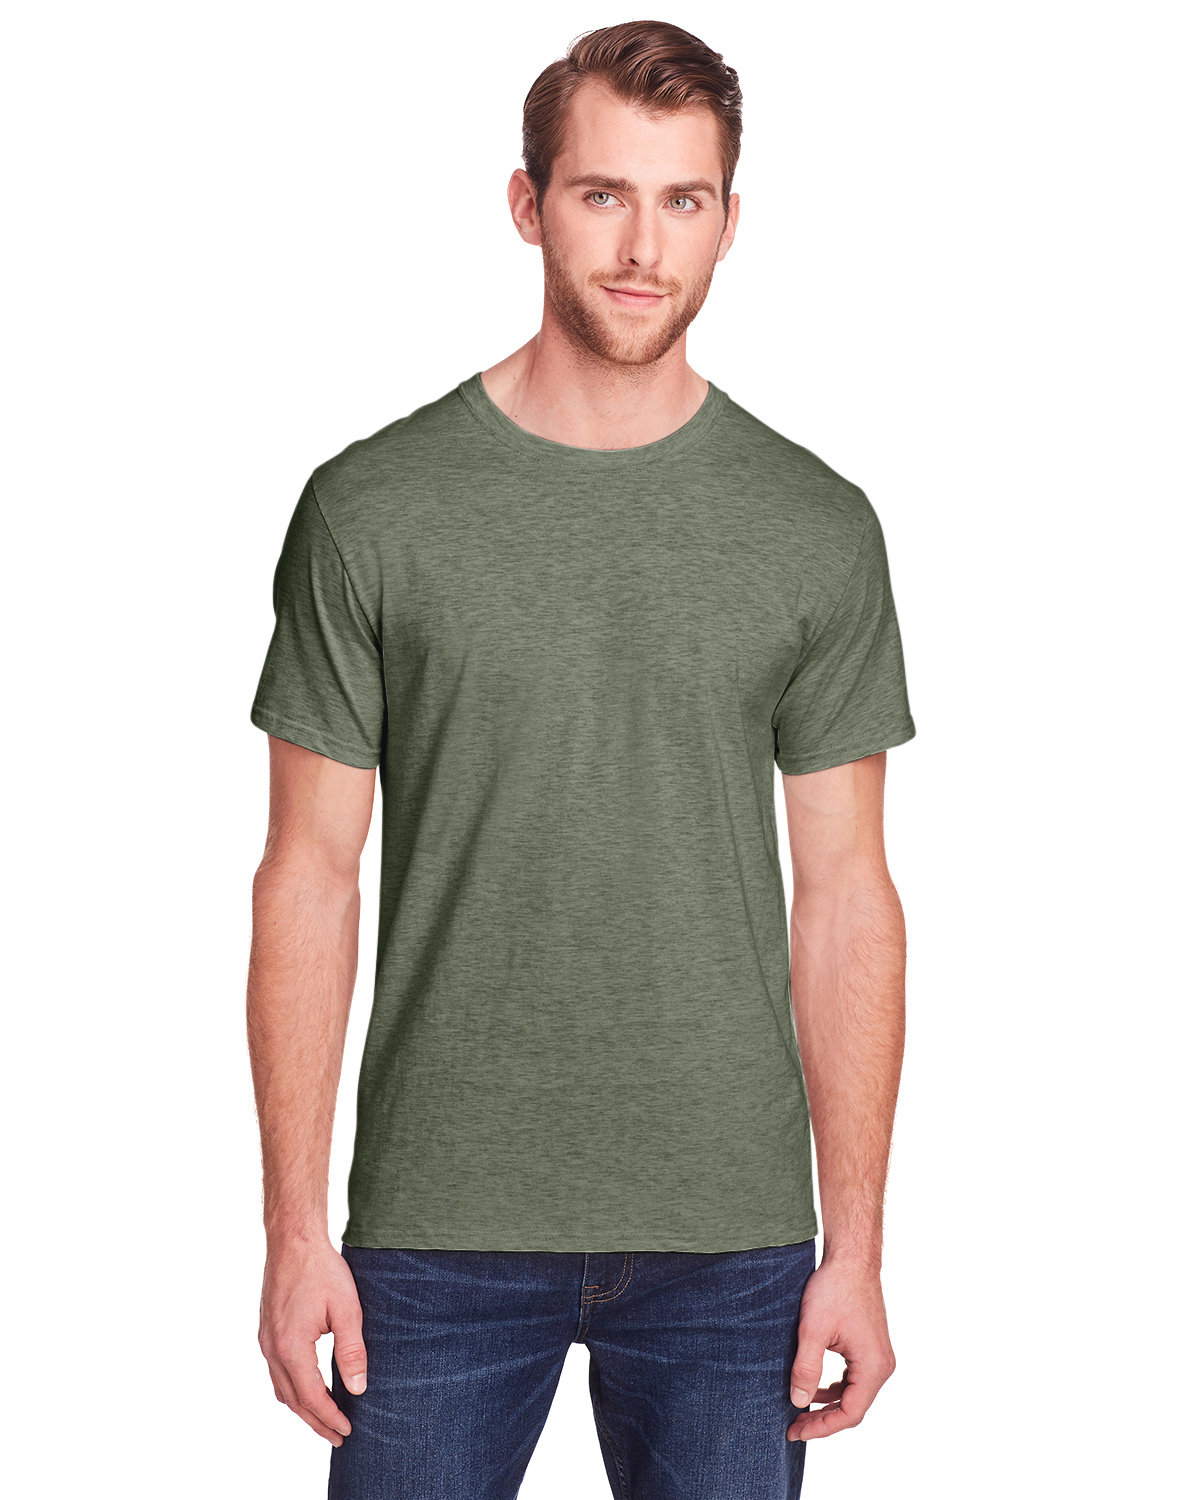 Fruit of the Loom Adult ICONIC™ T-Shirt MILITARY GRN HTH